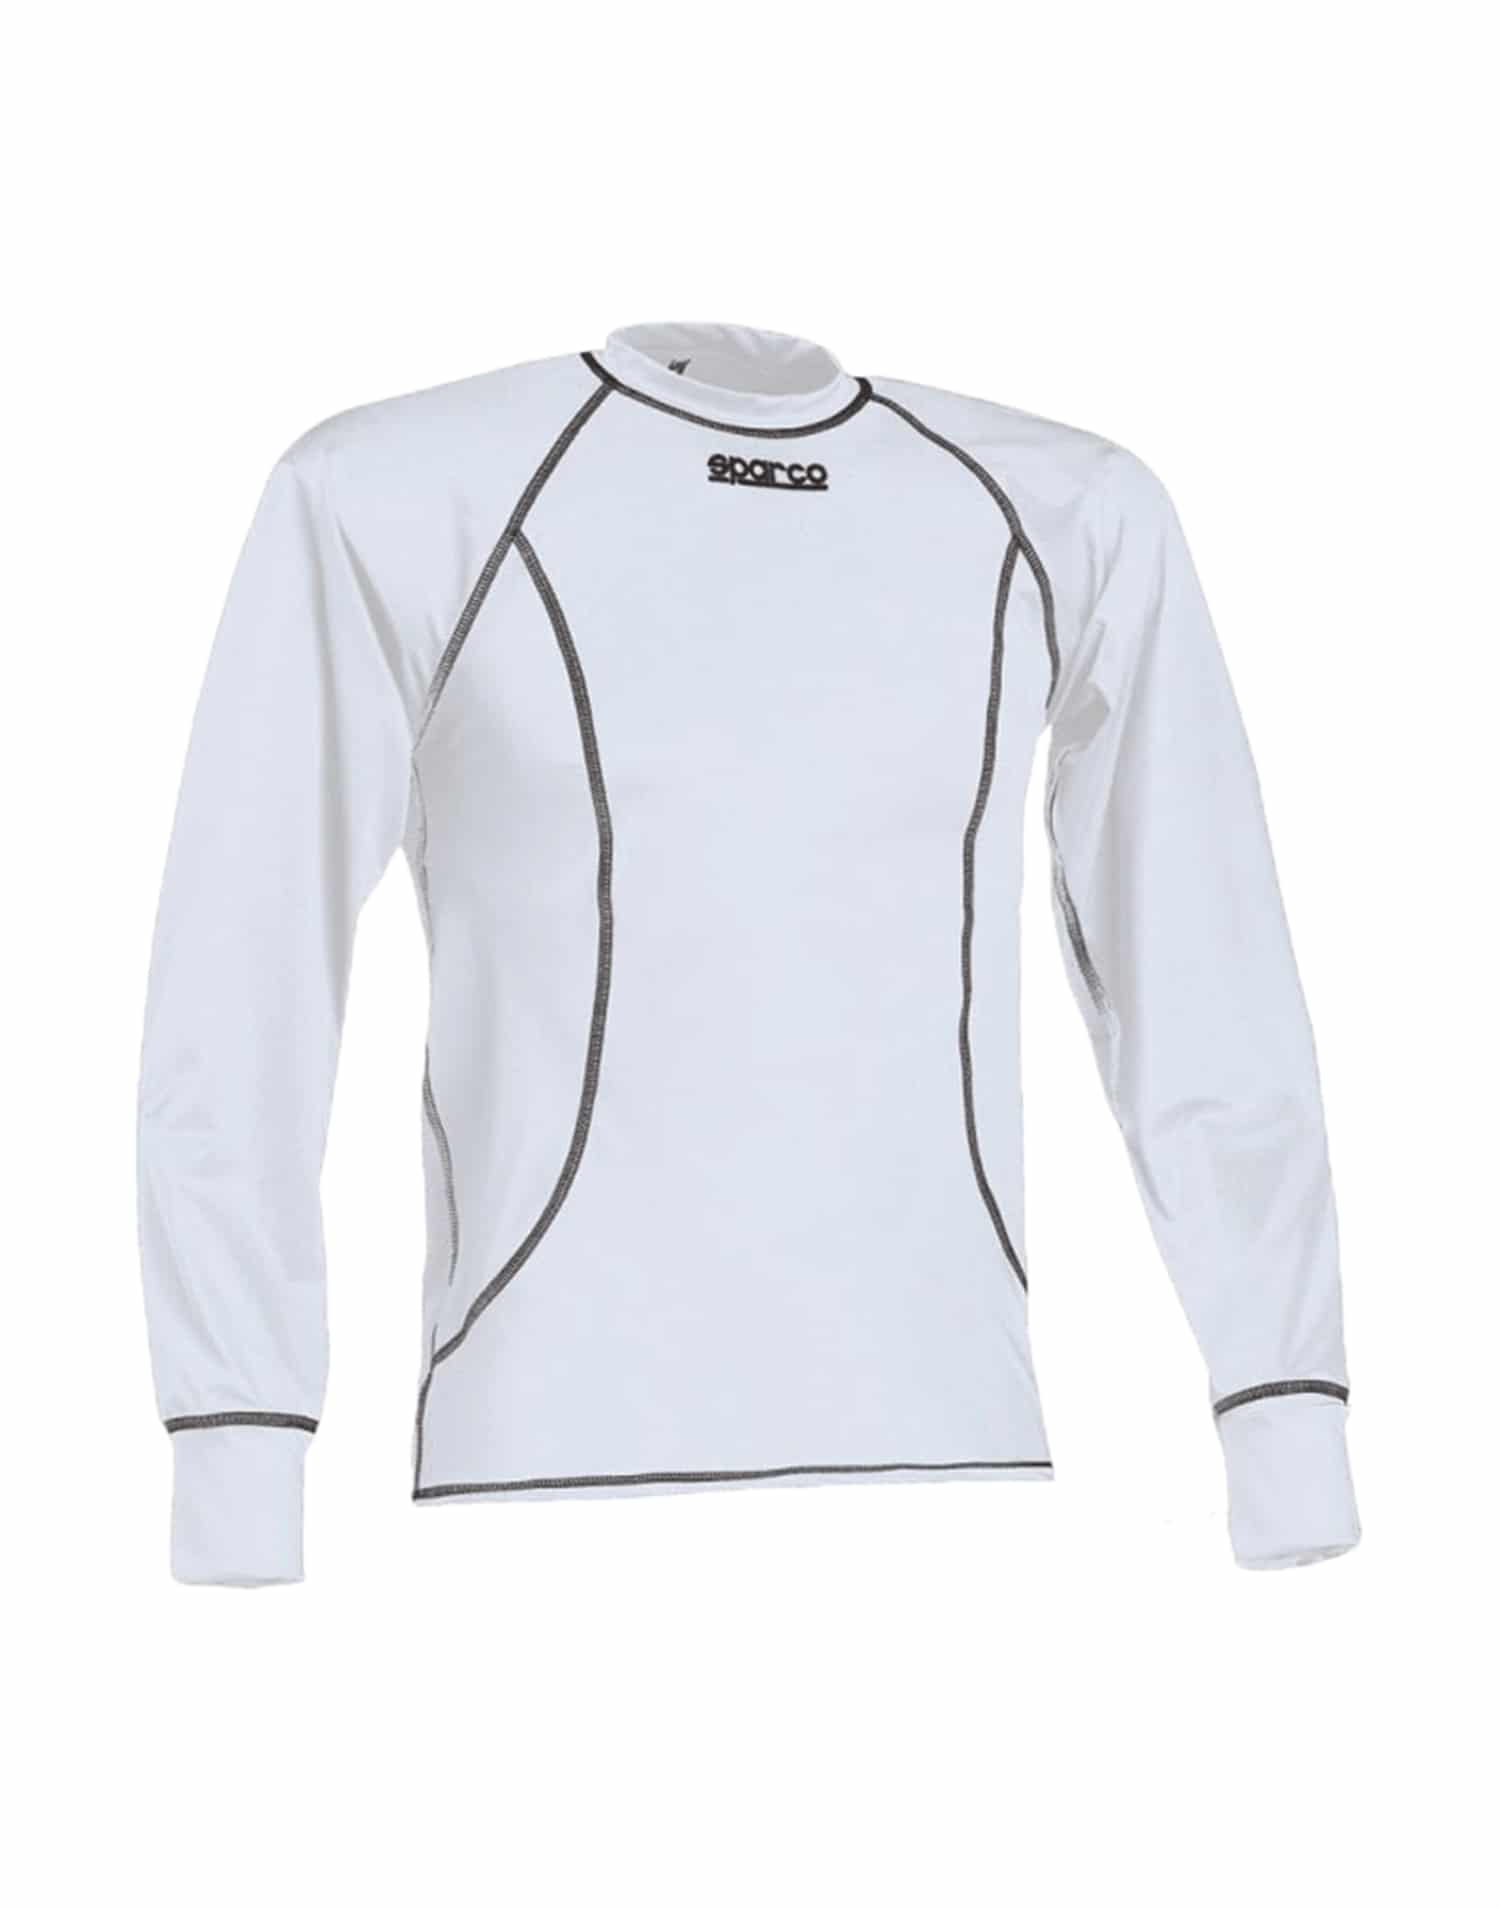 Sparco Long Sleeve Top